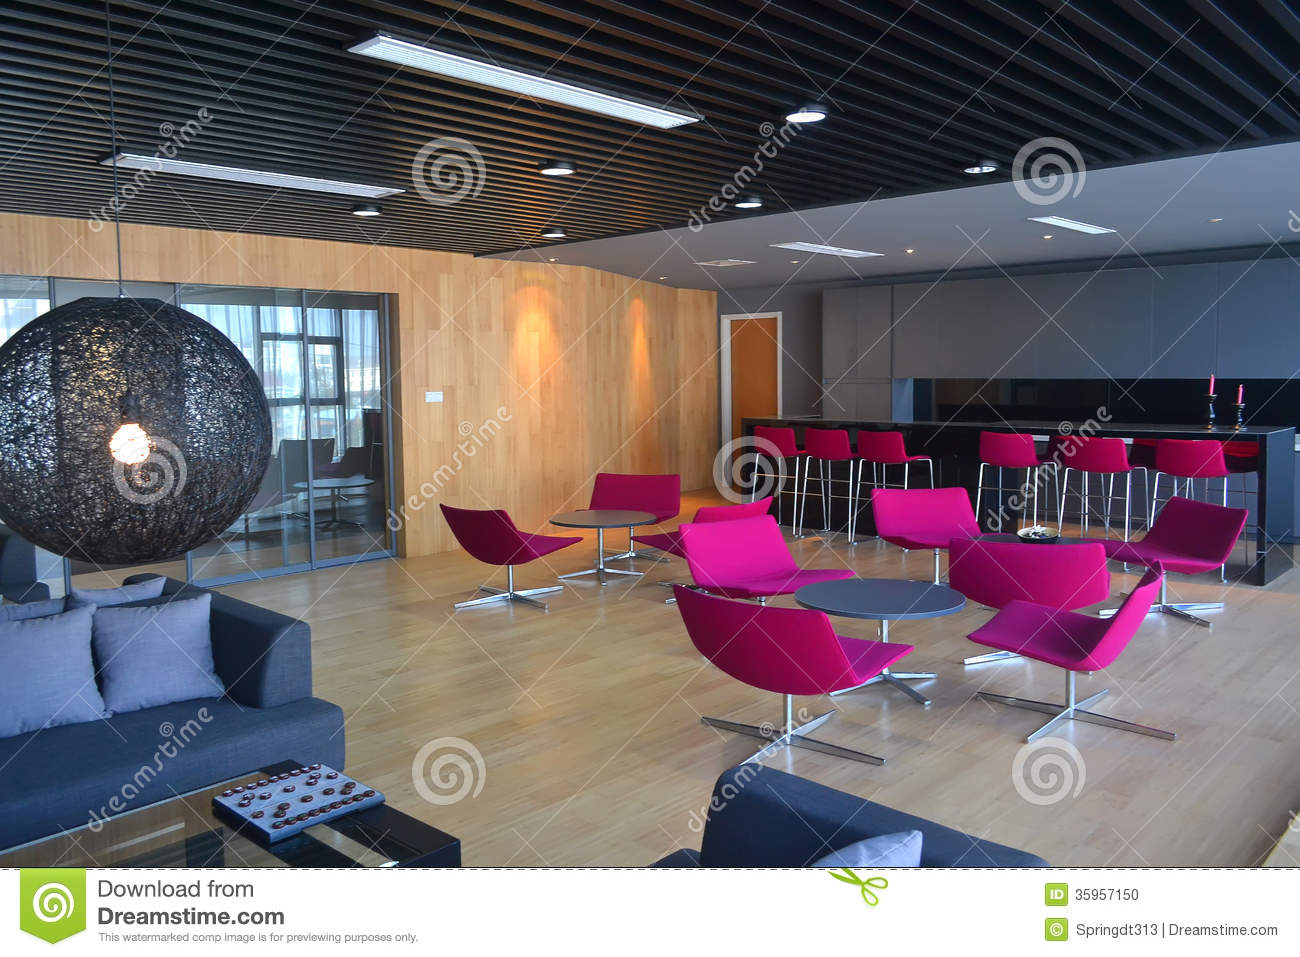 red lounge chair s bent bros rocking office stock photo. image of indoor, cabinet, coffee - 35957150